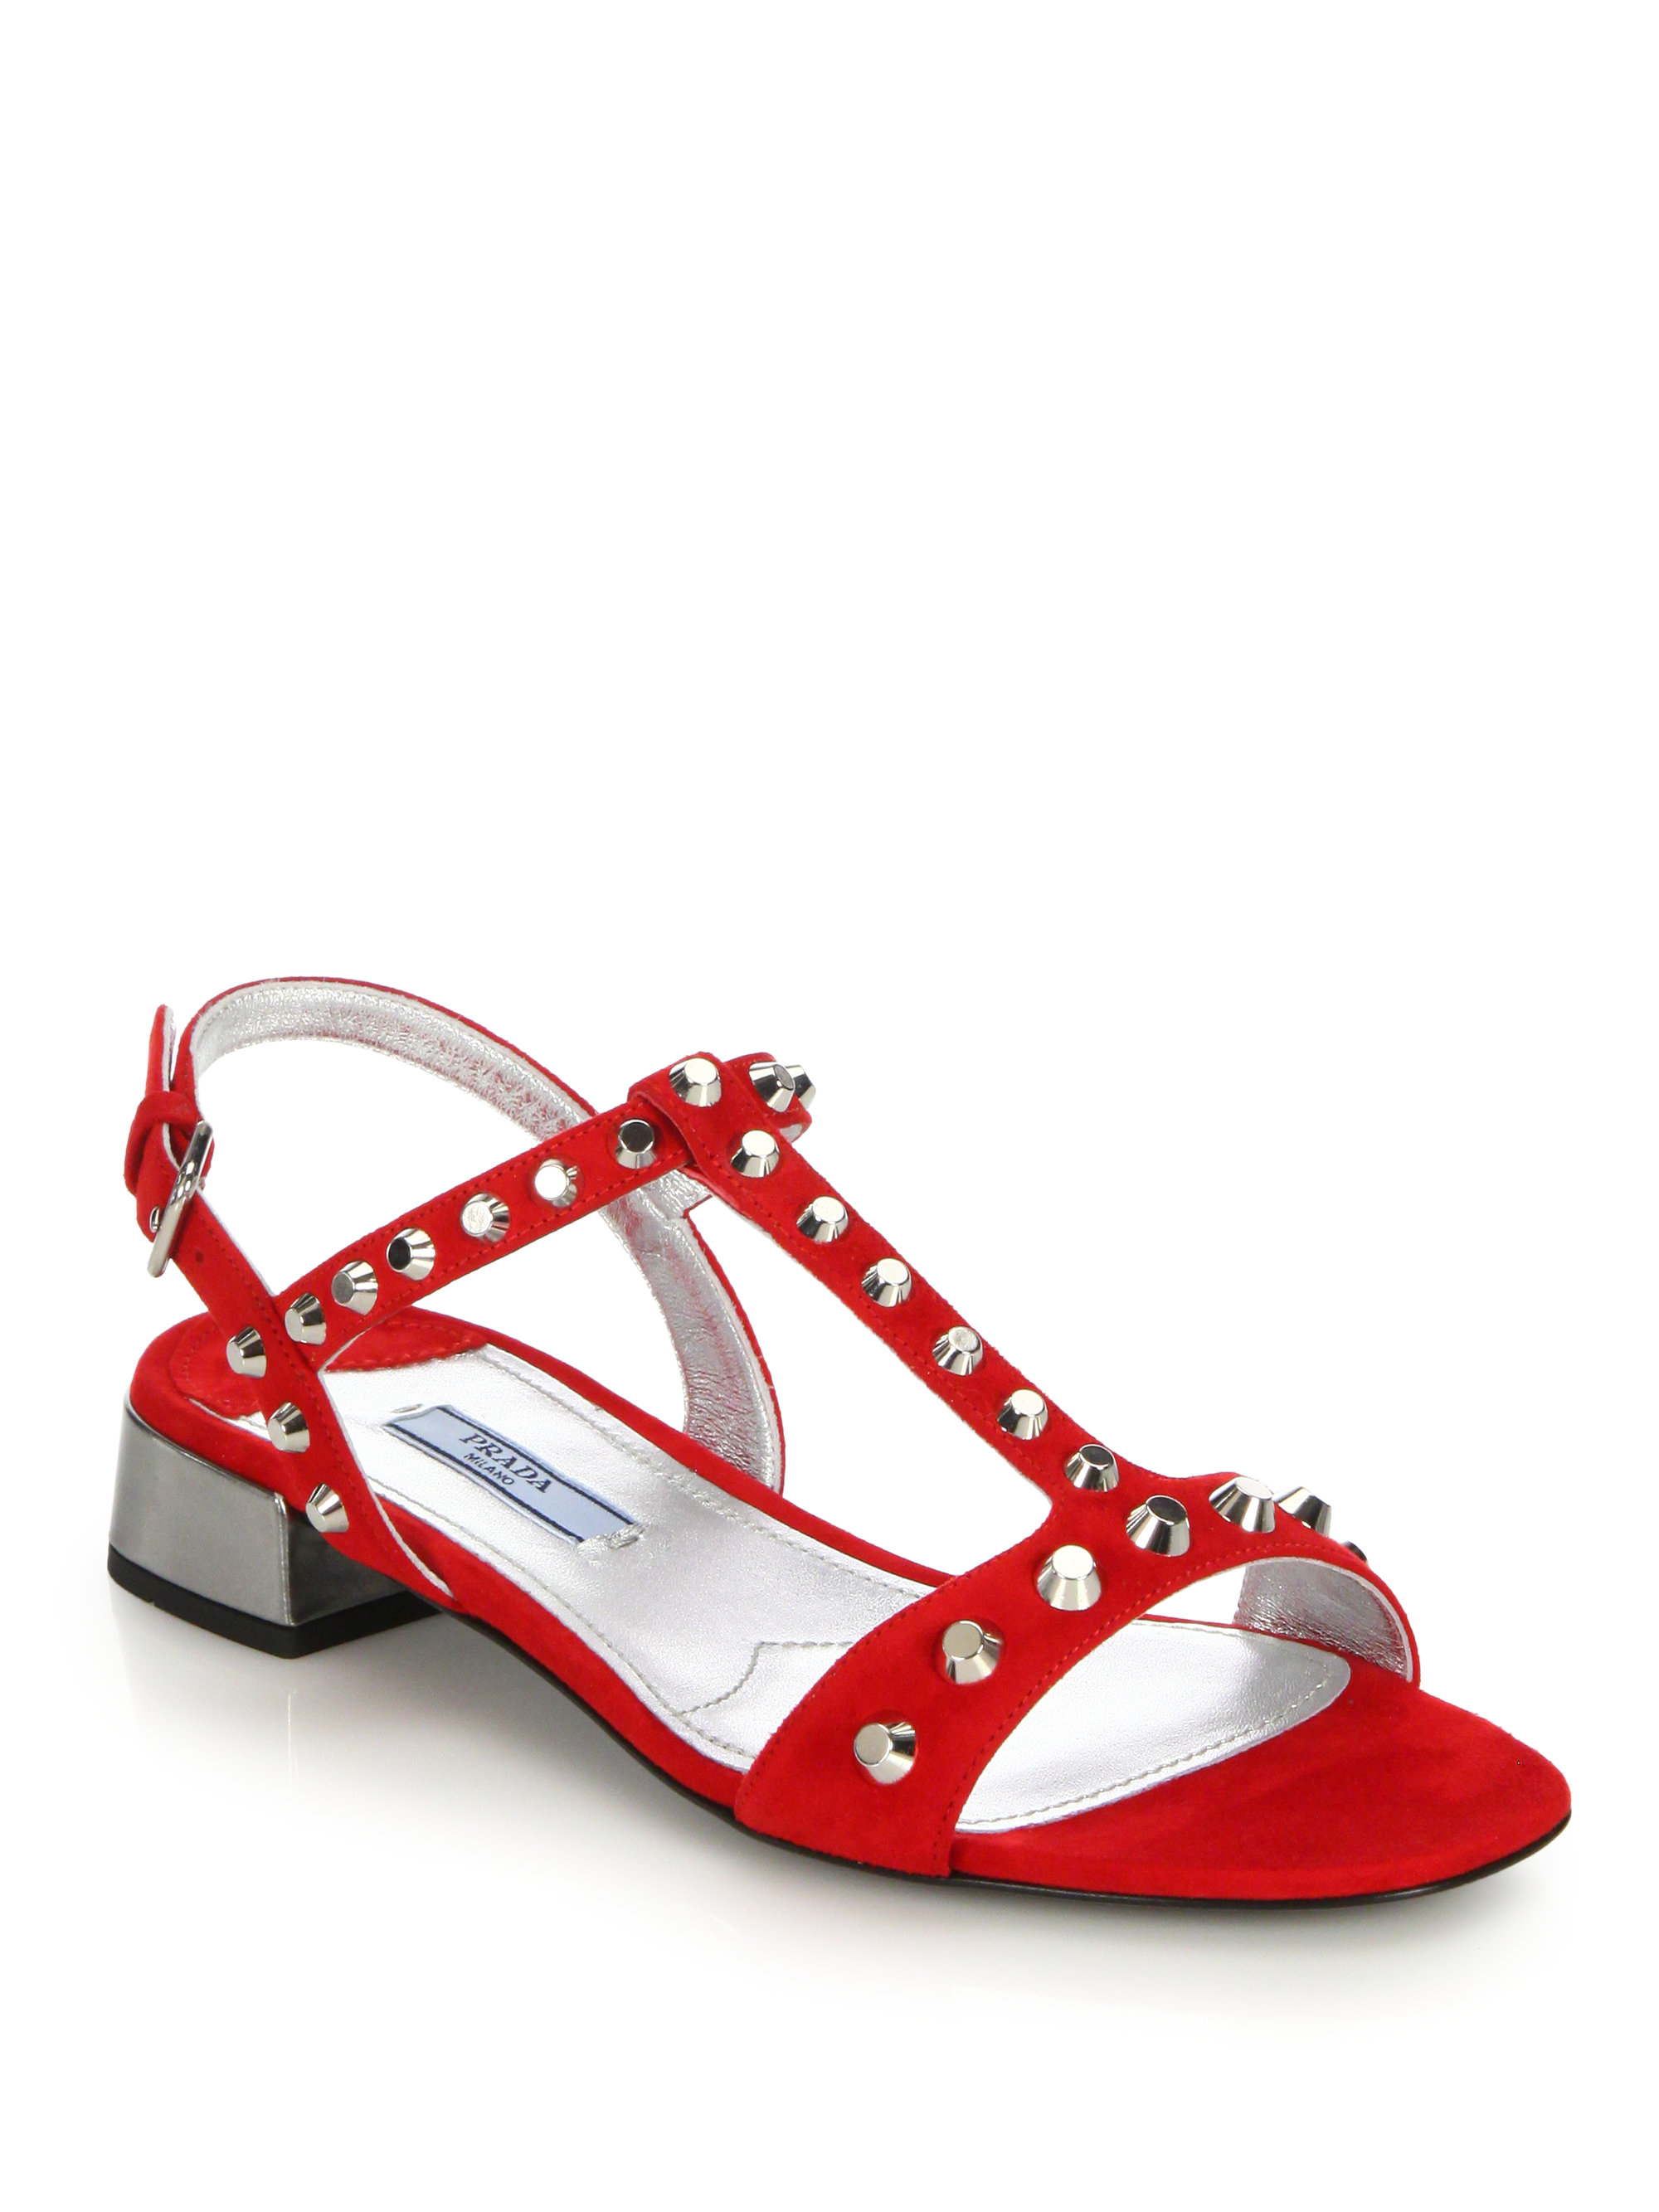 Lyst Prada Studded Suede Sandals In Red